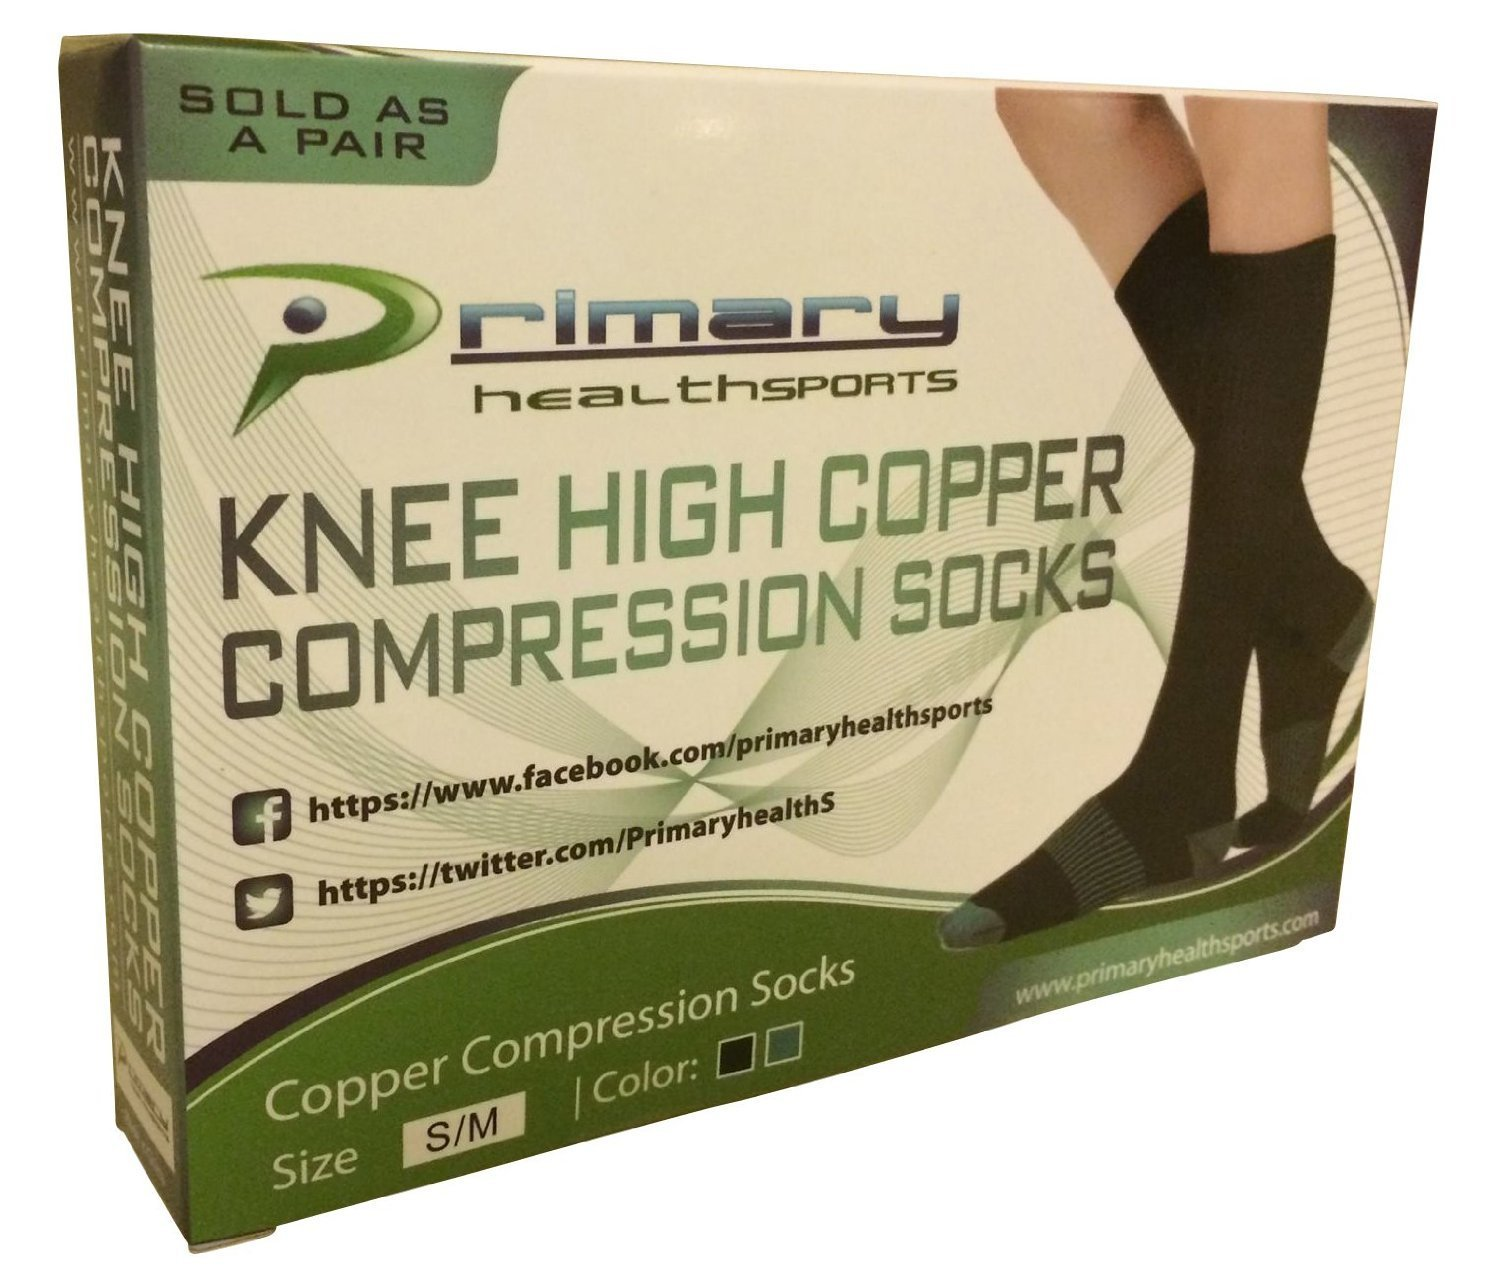 Primary Health Sports Best Compression Copper Socks - Great for Men, Women, Travelers, Nurses, Pregnancy - Protect & Support your Calves, Ankles, and Feet. Graduated Compression. 15-20mmhg by Primary Health Sports (Image #4)